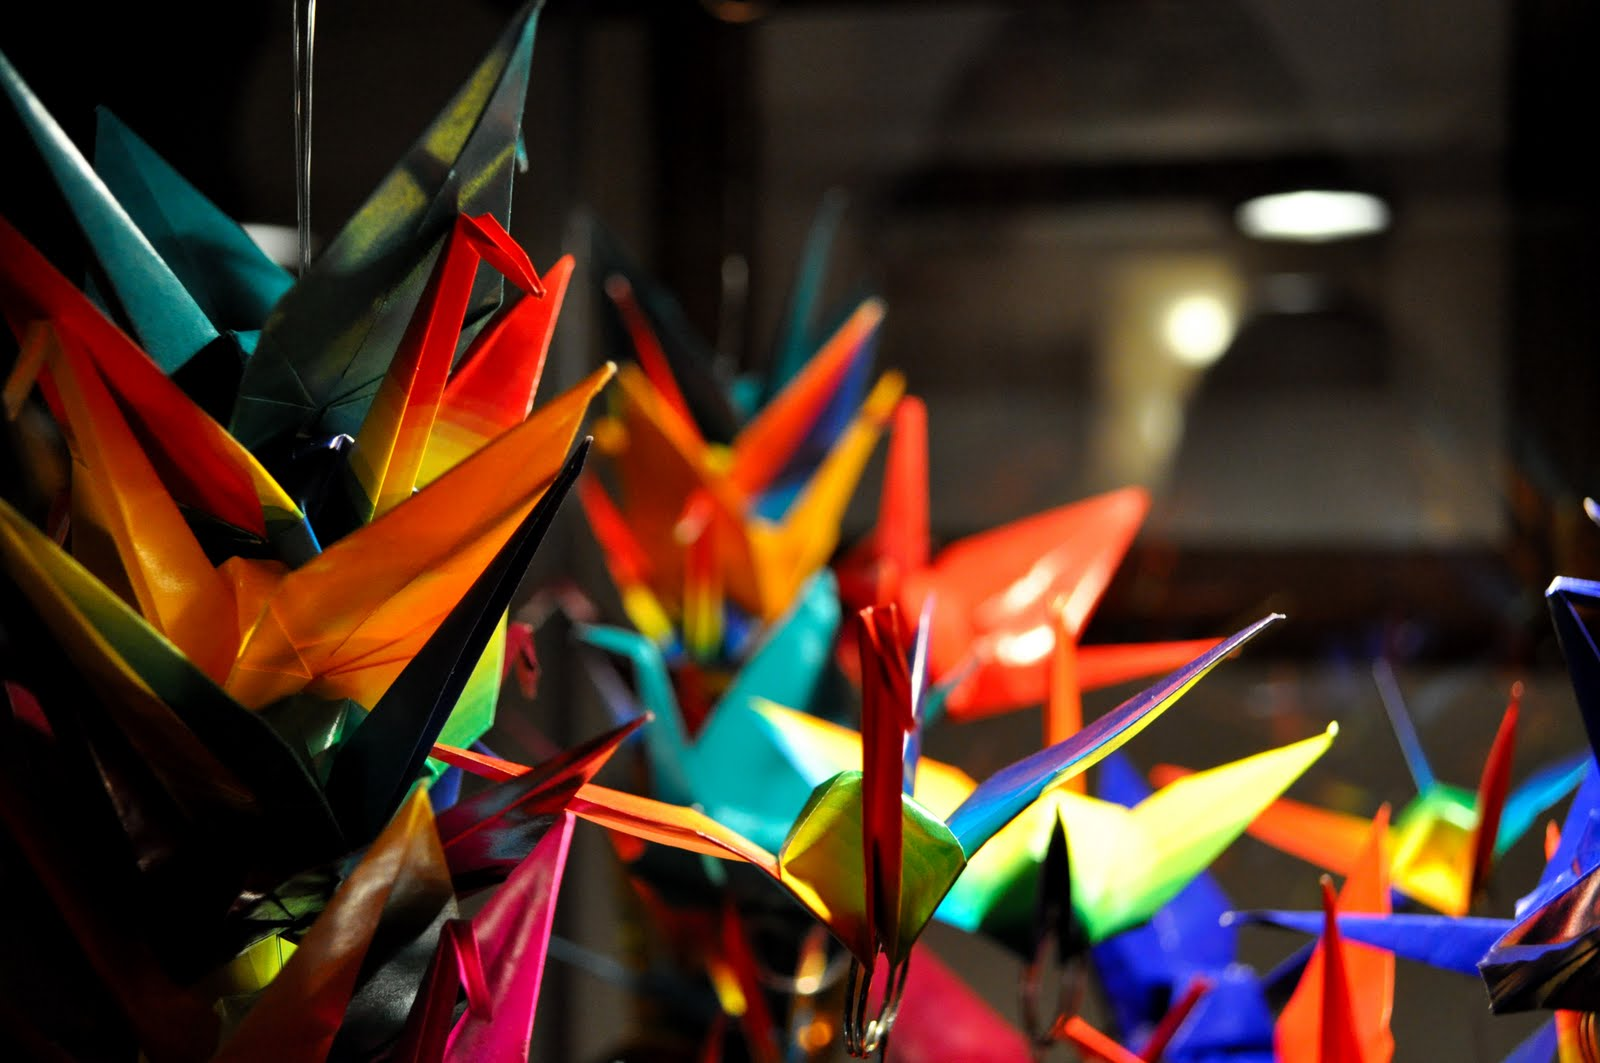 Ramblings Of A Stay At Home Mom 1 000 Paper Cranes